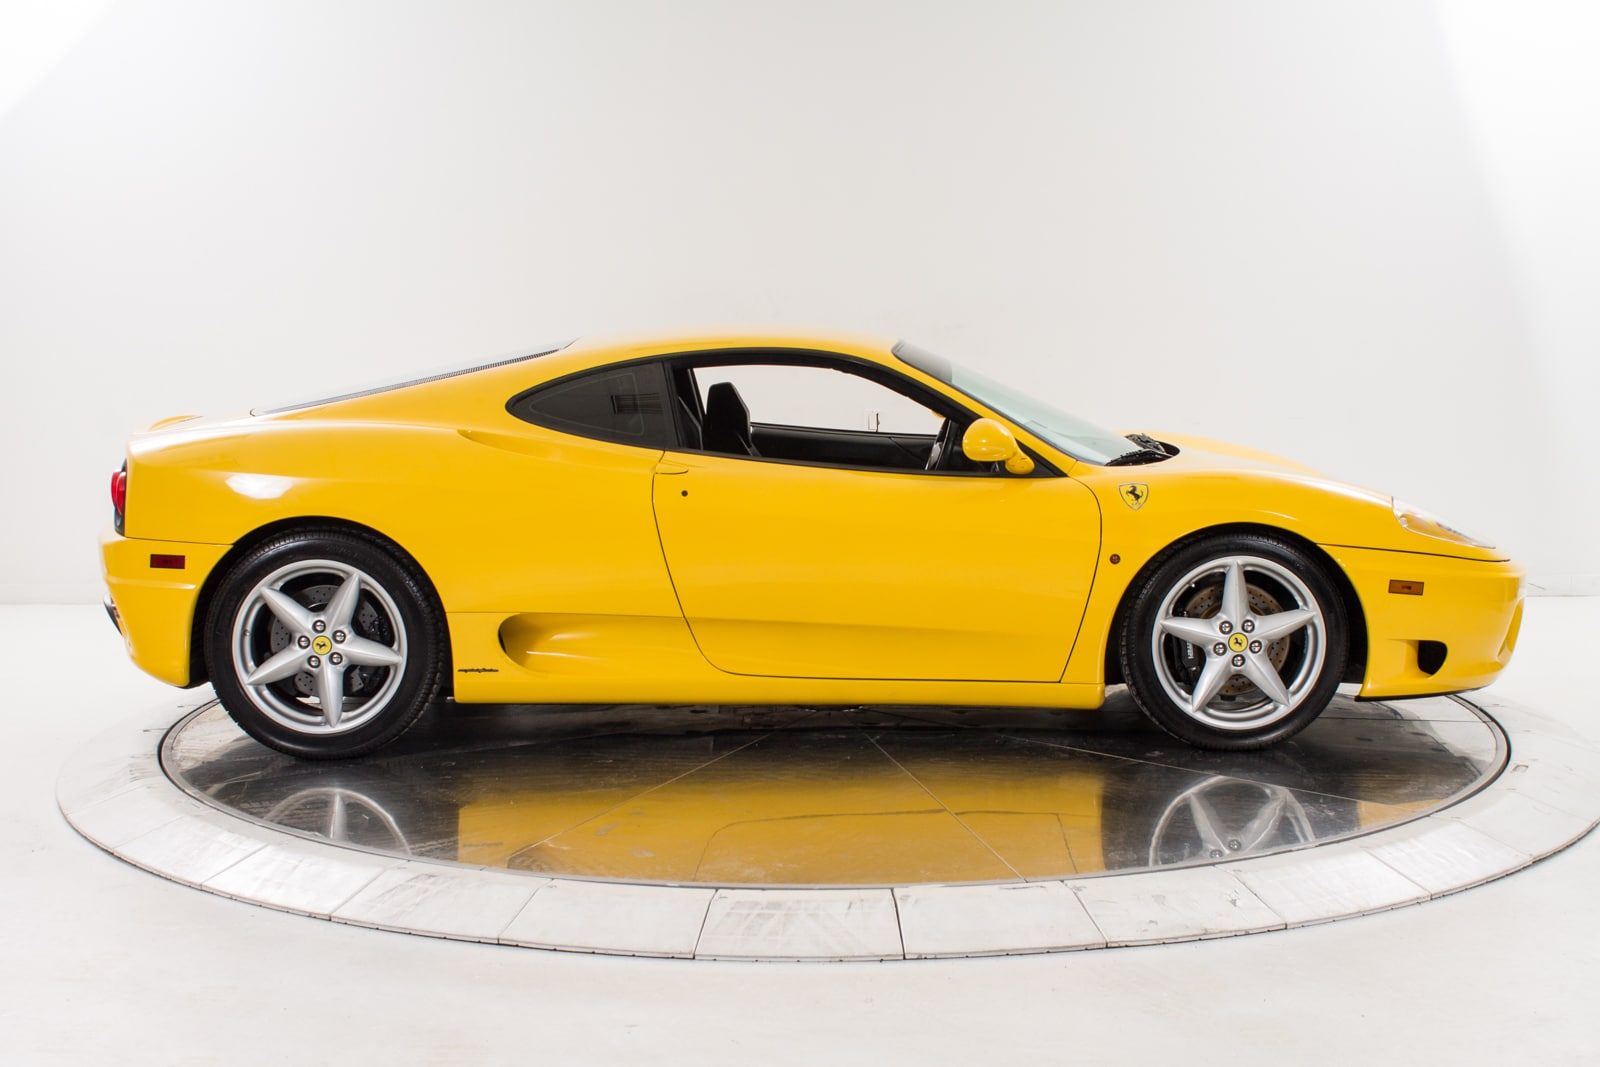 used 2003 ferrari 360 modena 6x for sale plainview near long island ny vin zffyu51a830134059. Black Bedroom Furniture Sets. Home Design Ideas